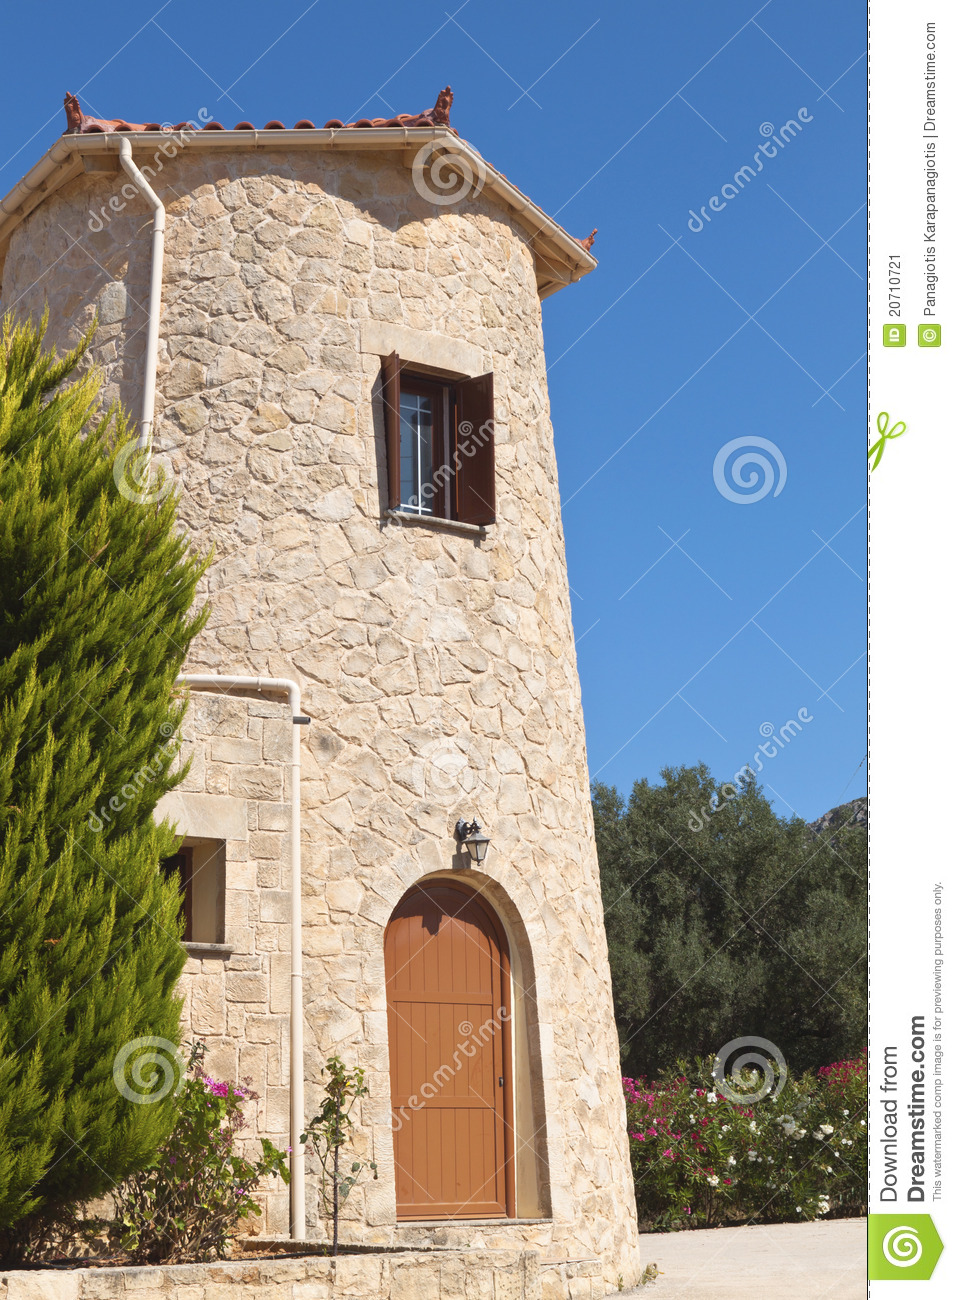 Towerhouse located at Kefalonia